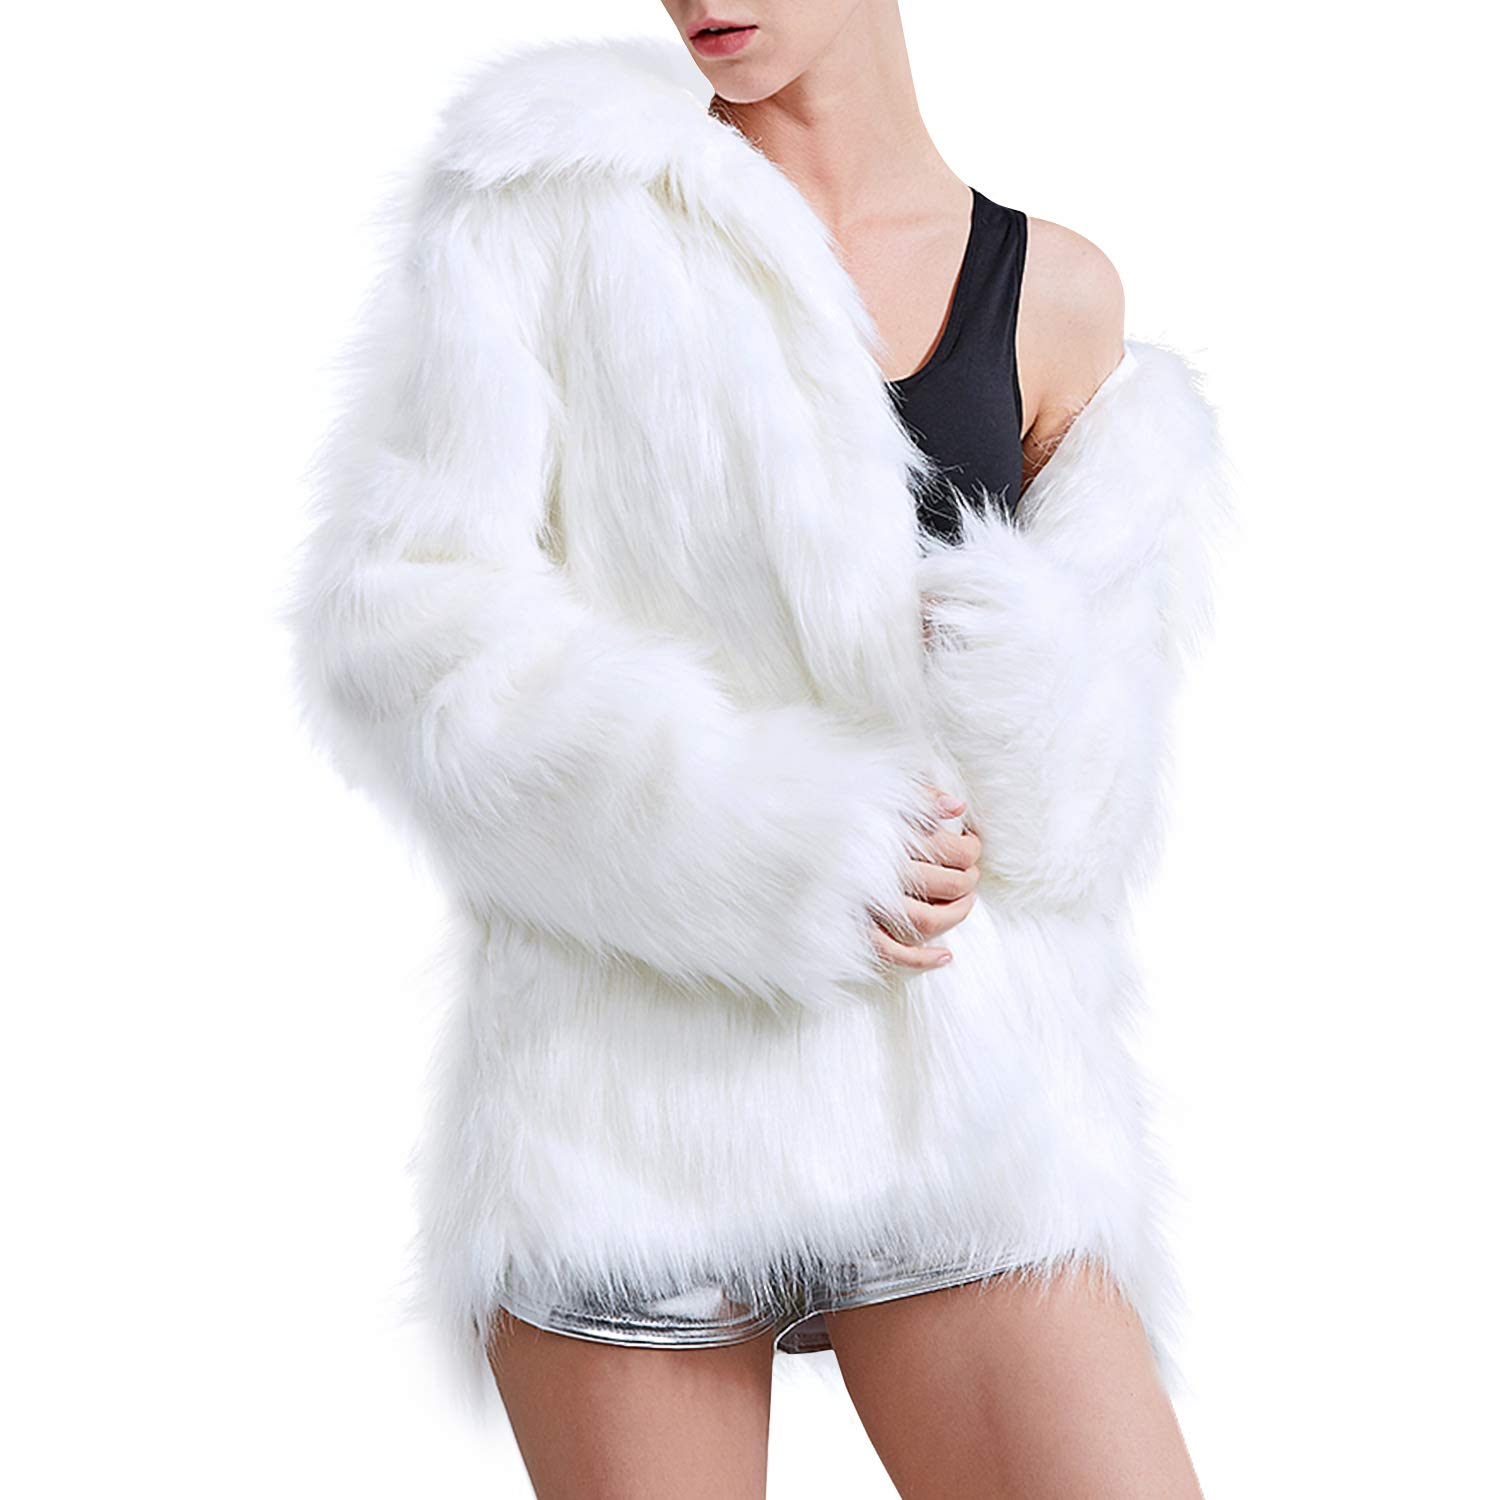 70s Jackets, Furs, Vests, Ponchos Zicac Faux Fur Coat Winter Warm Fur Jacket Luxury Long Sleeve Overcoat Parka Outerwear for Women Men $39.99 AT vintagedancer.com